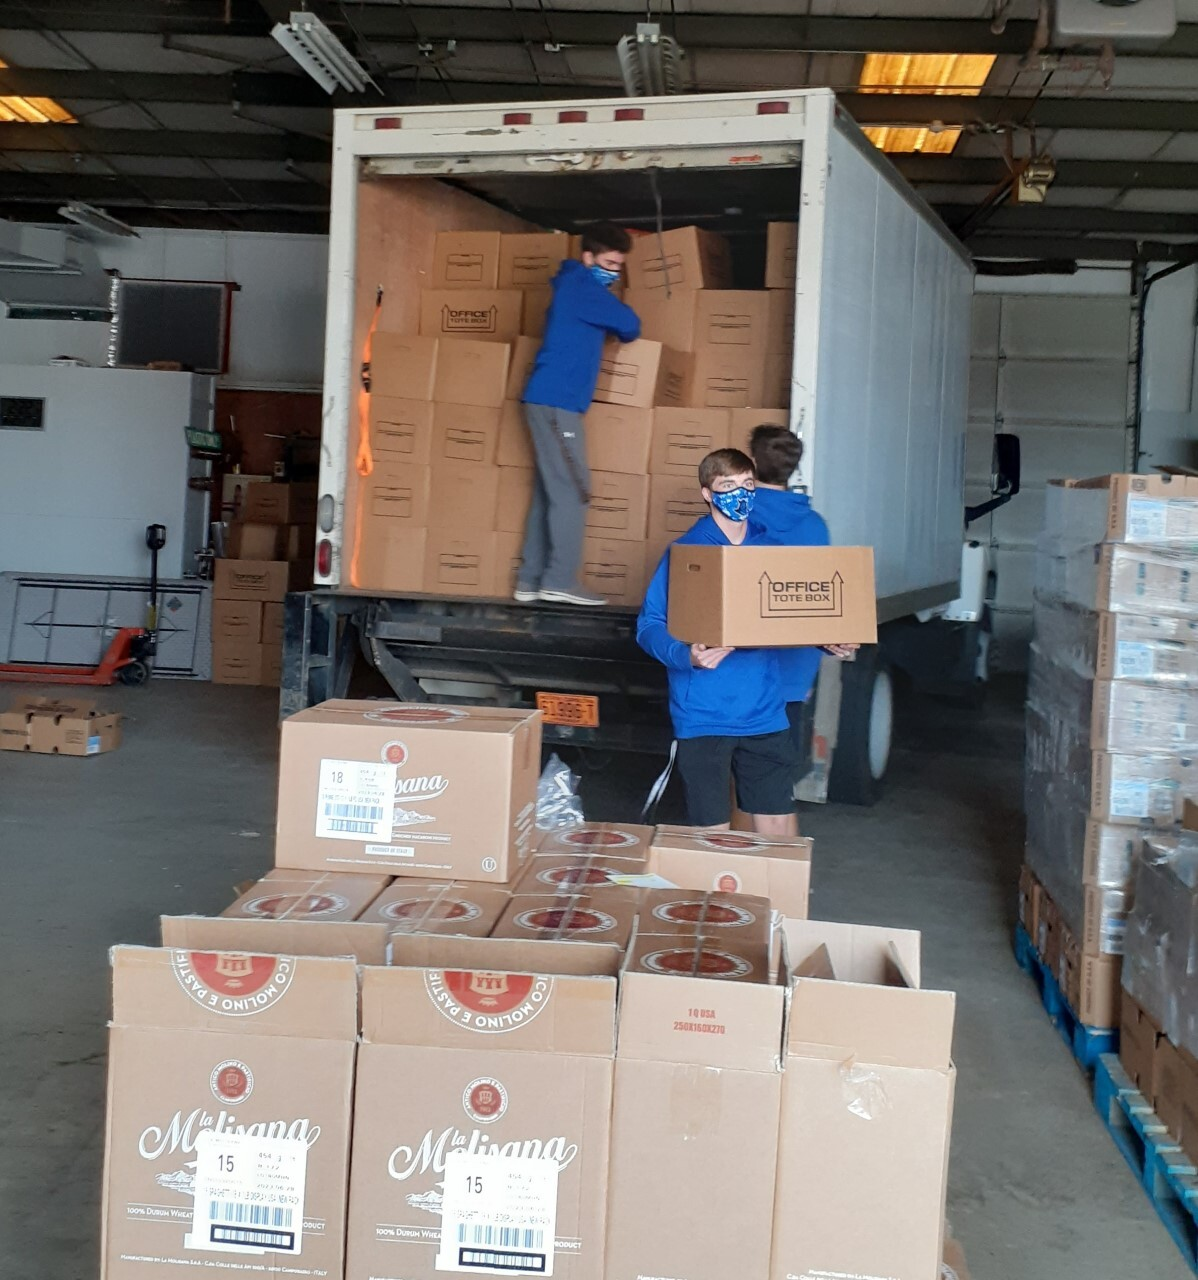 Baseball players unload boxes from truck